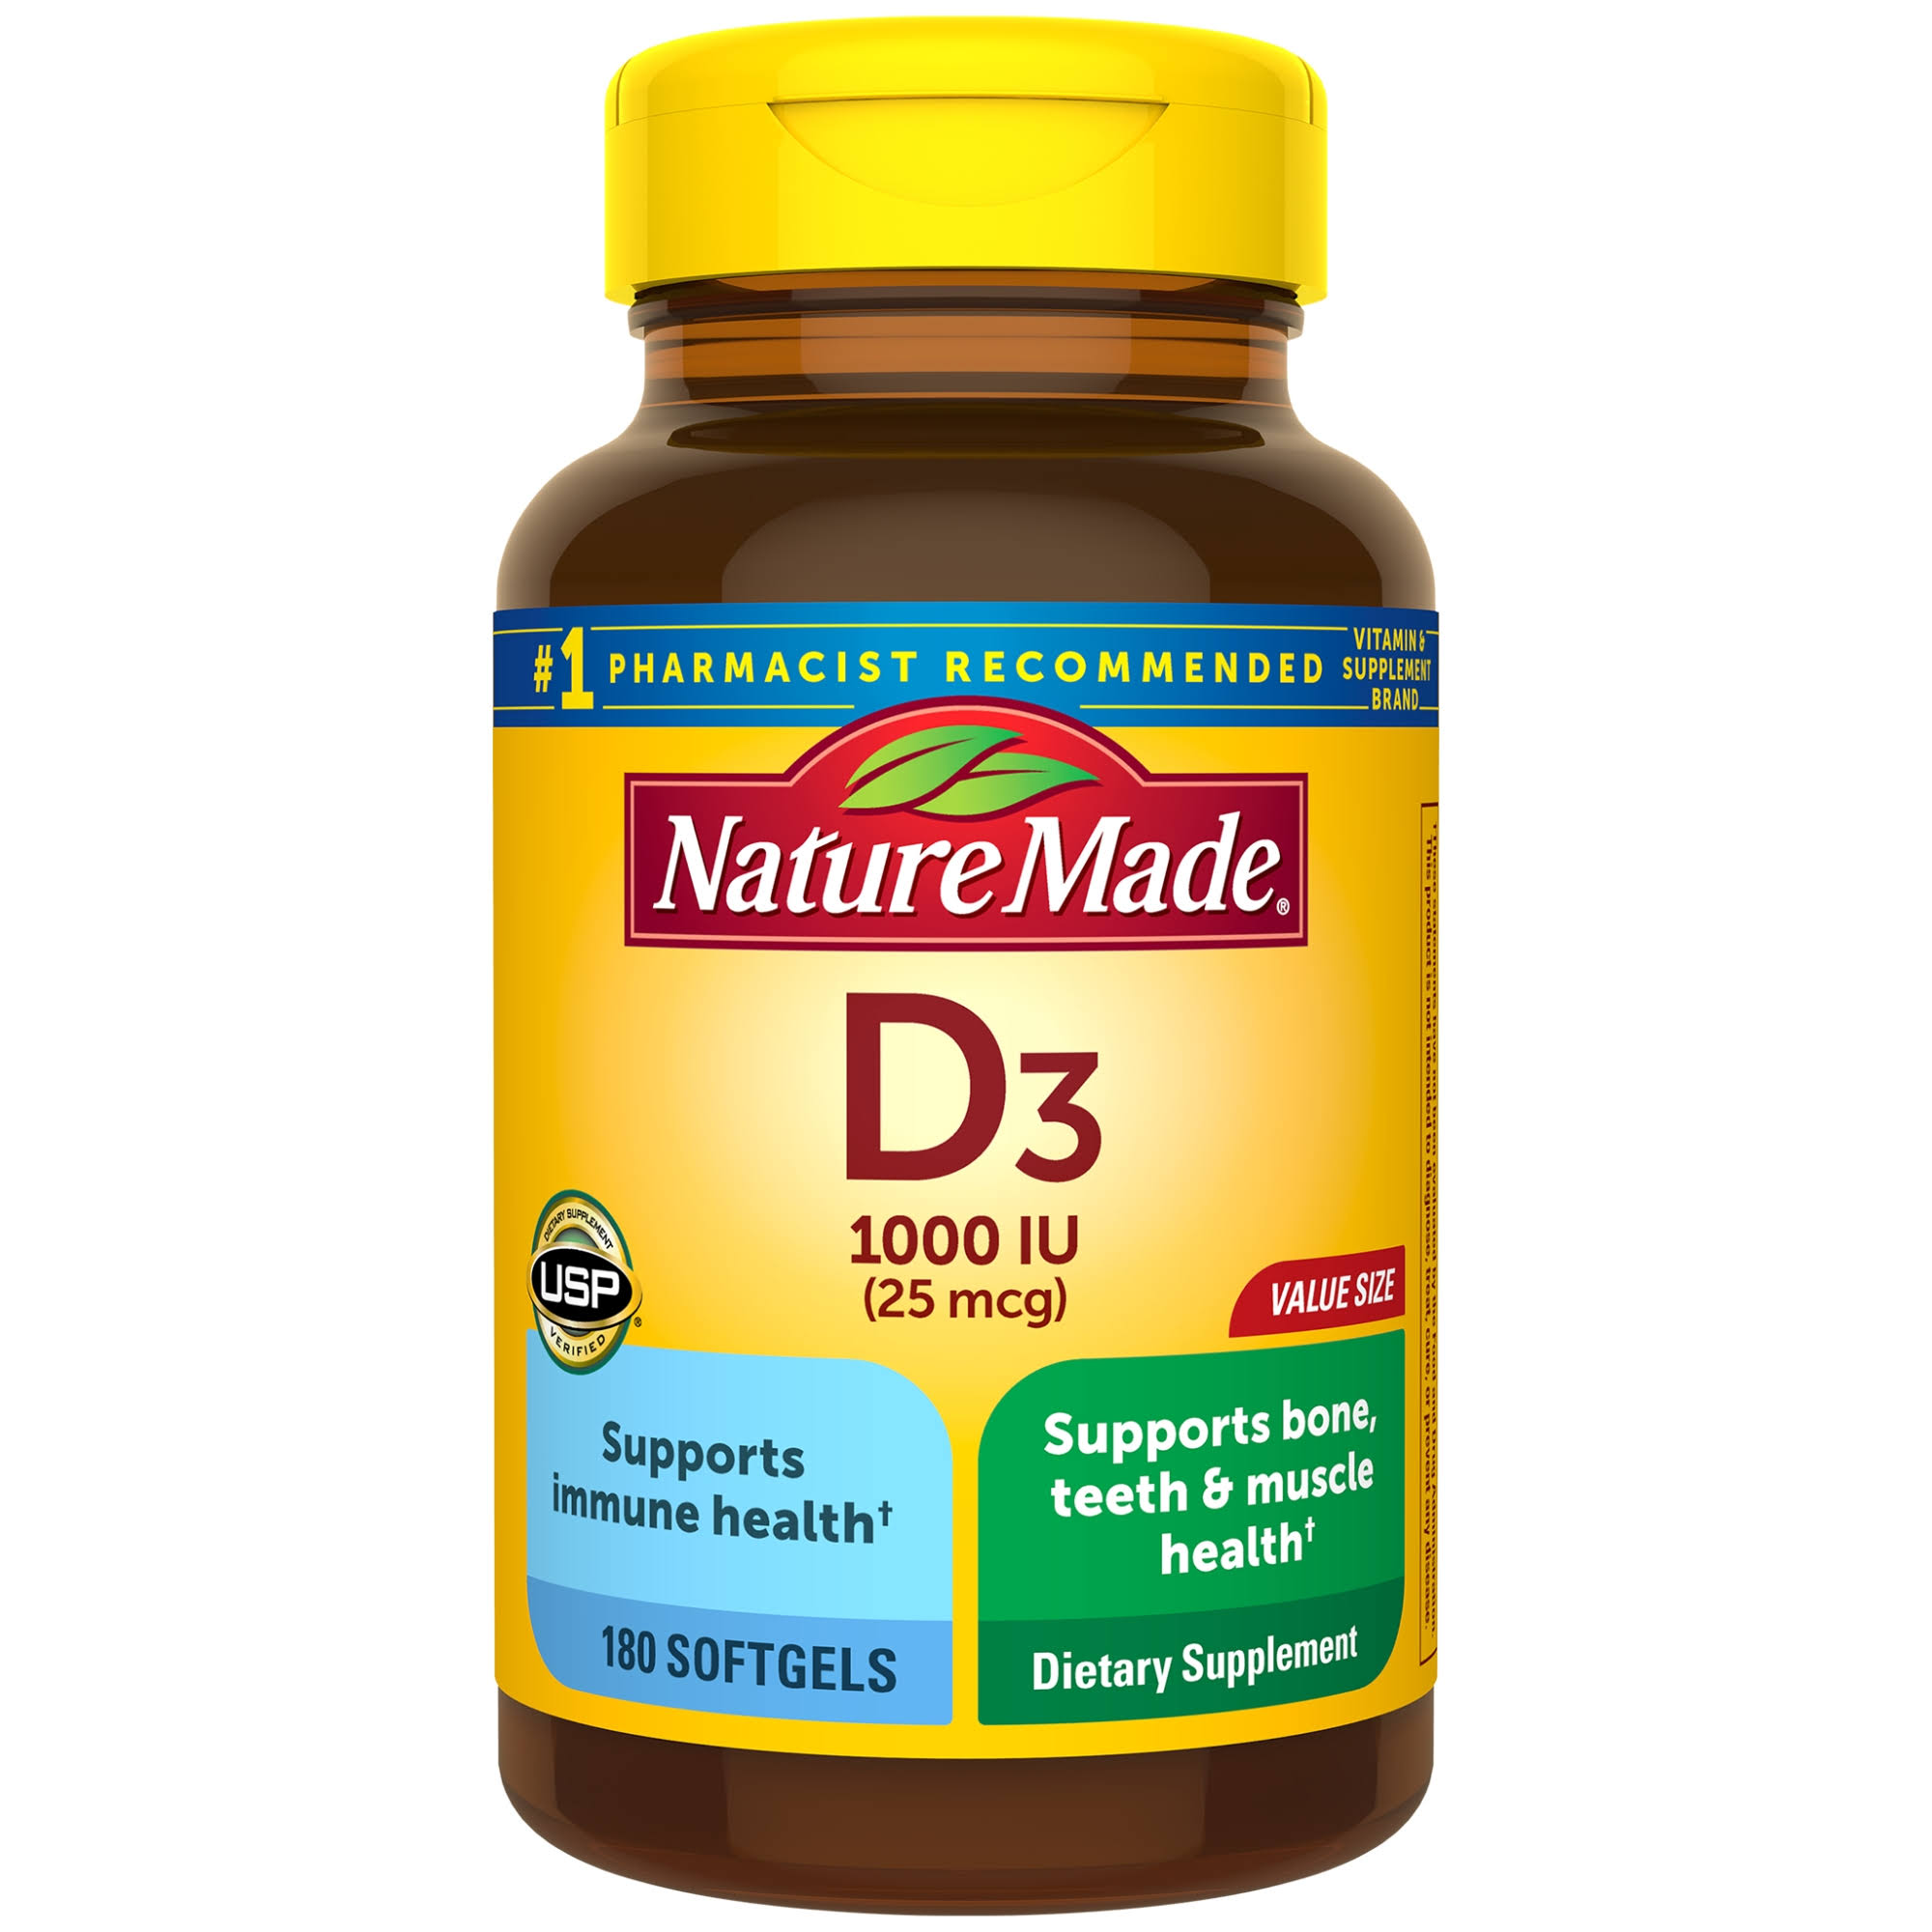 Nature Made Vitamin D3 1000 IU Dietary Supplement - 180ct